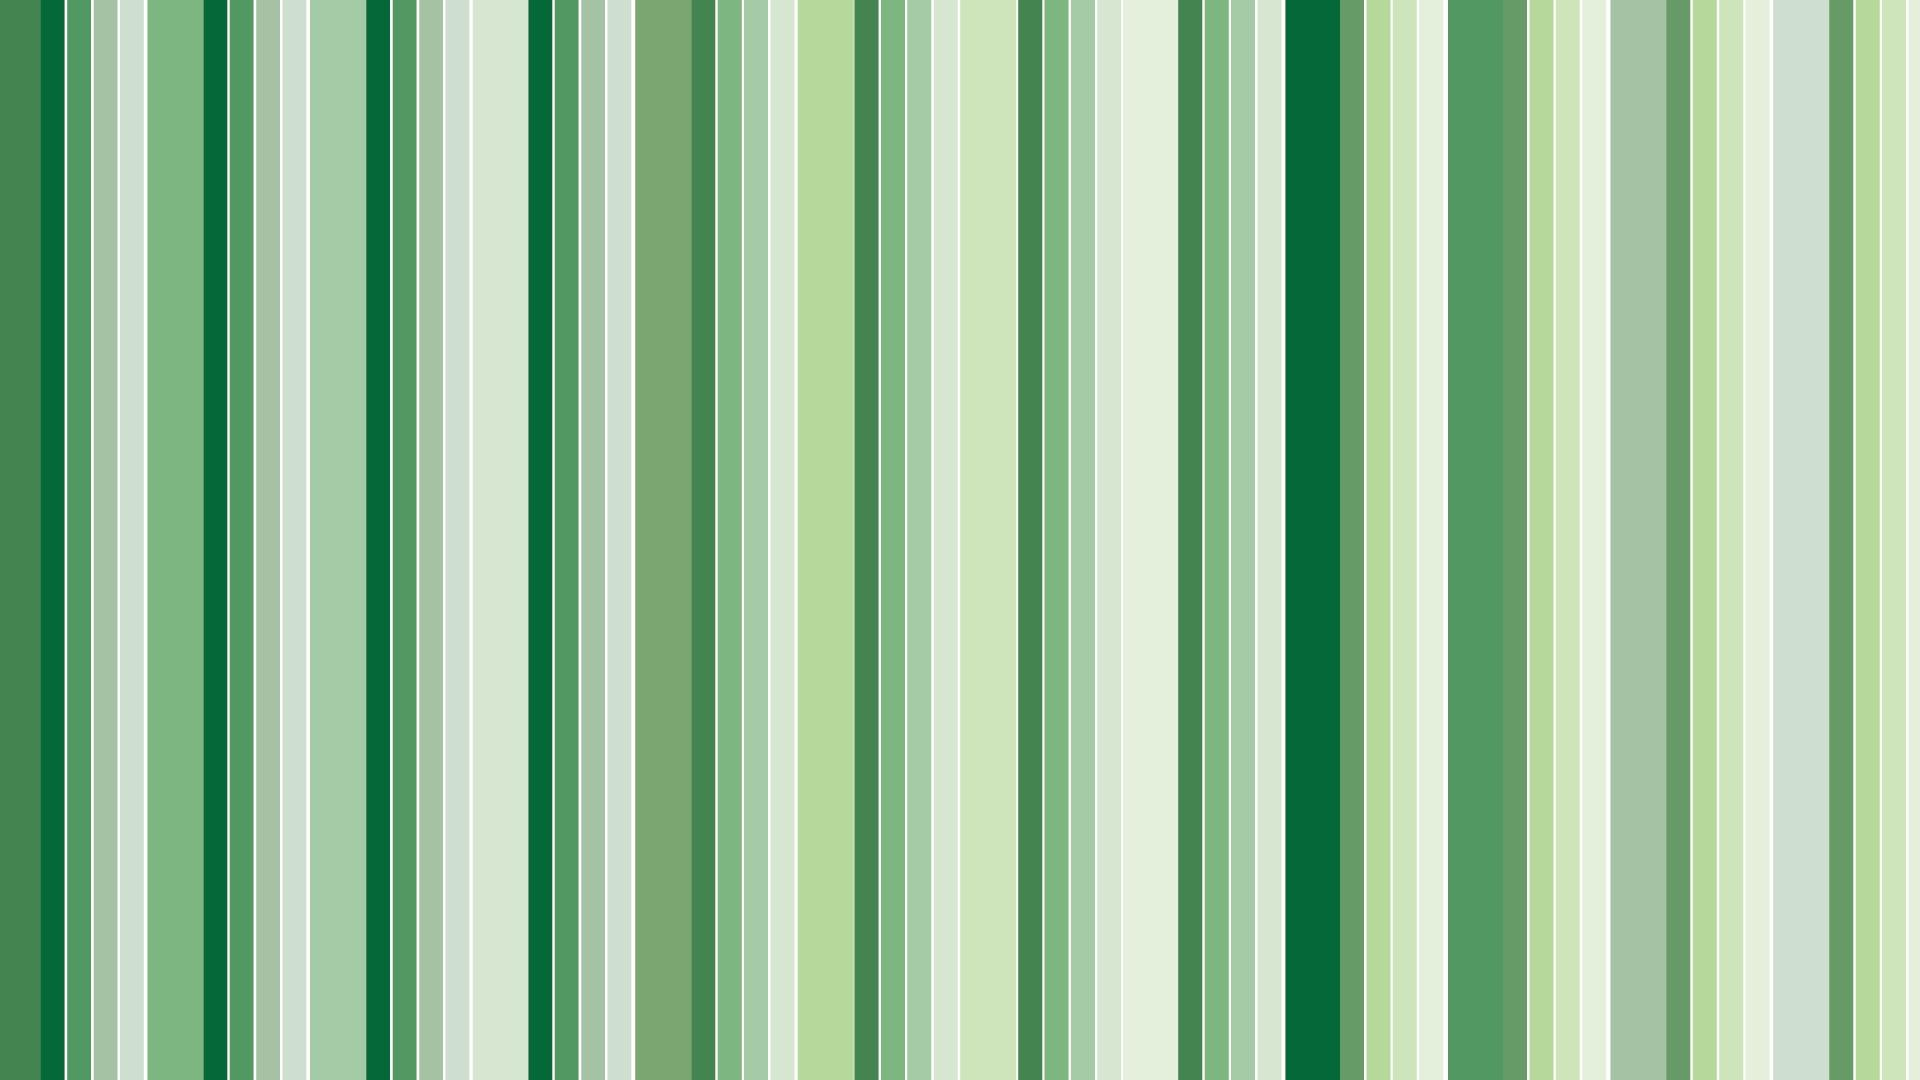 Green Stripe Wallpaper HD Wallpapers And Pictures 1920x1080